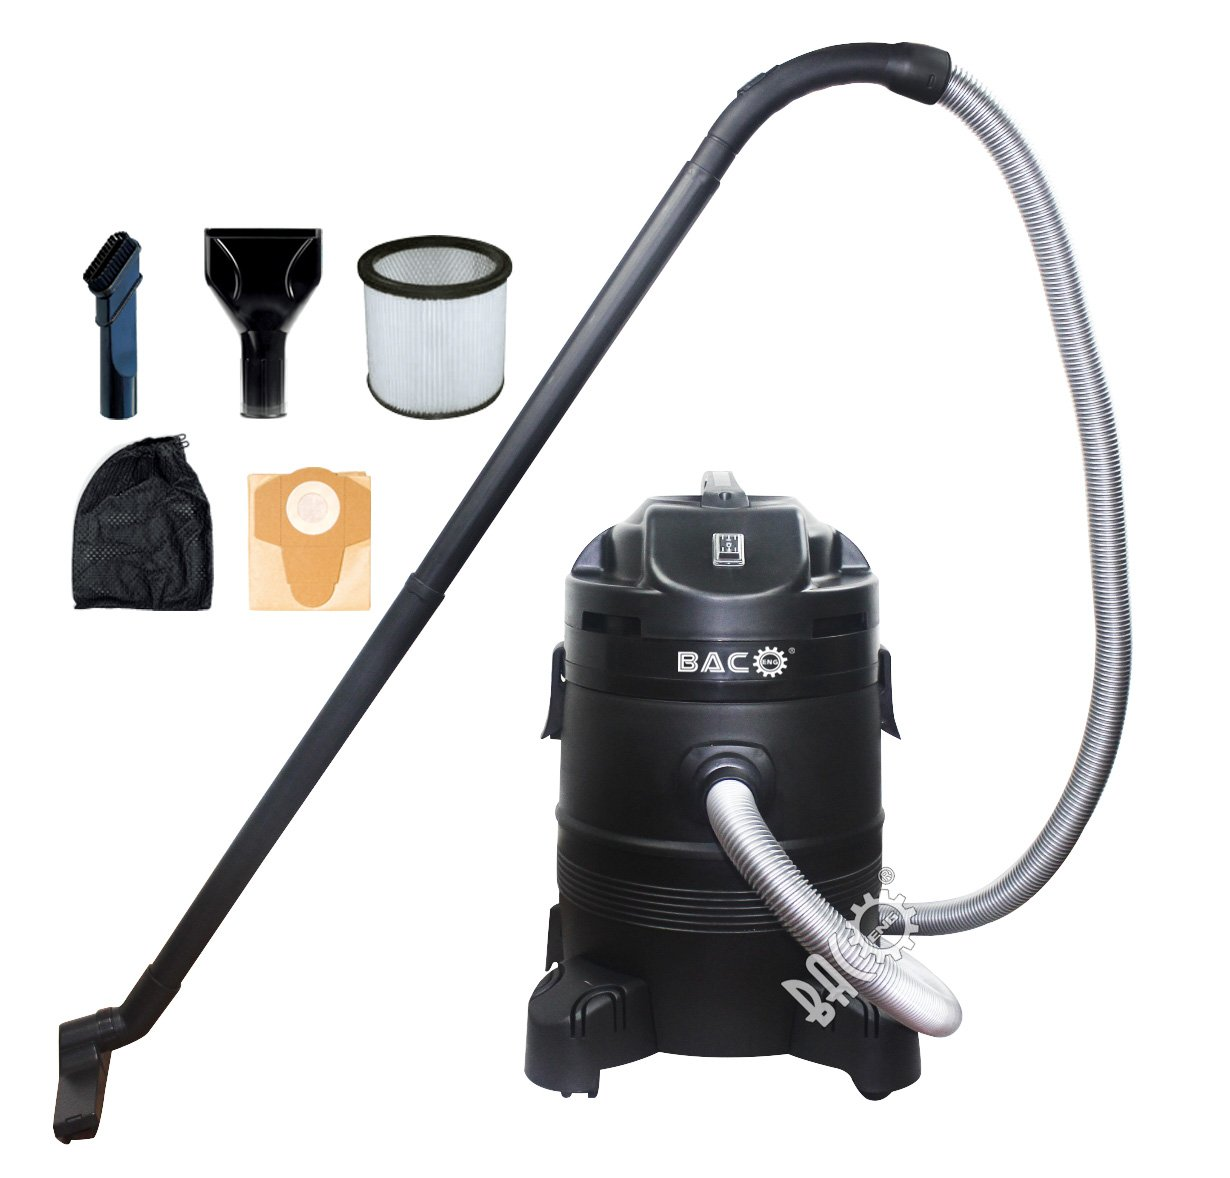 BACOENG 12 Gallon 1400W Ultra Clean Pond Vacuum